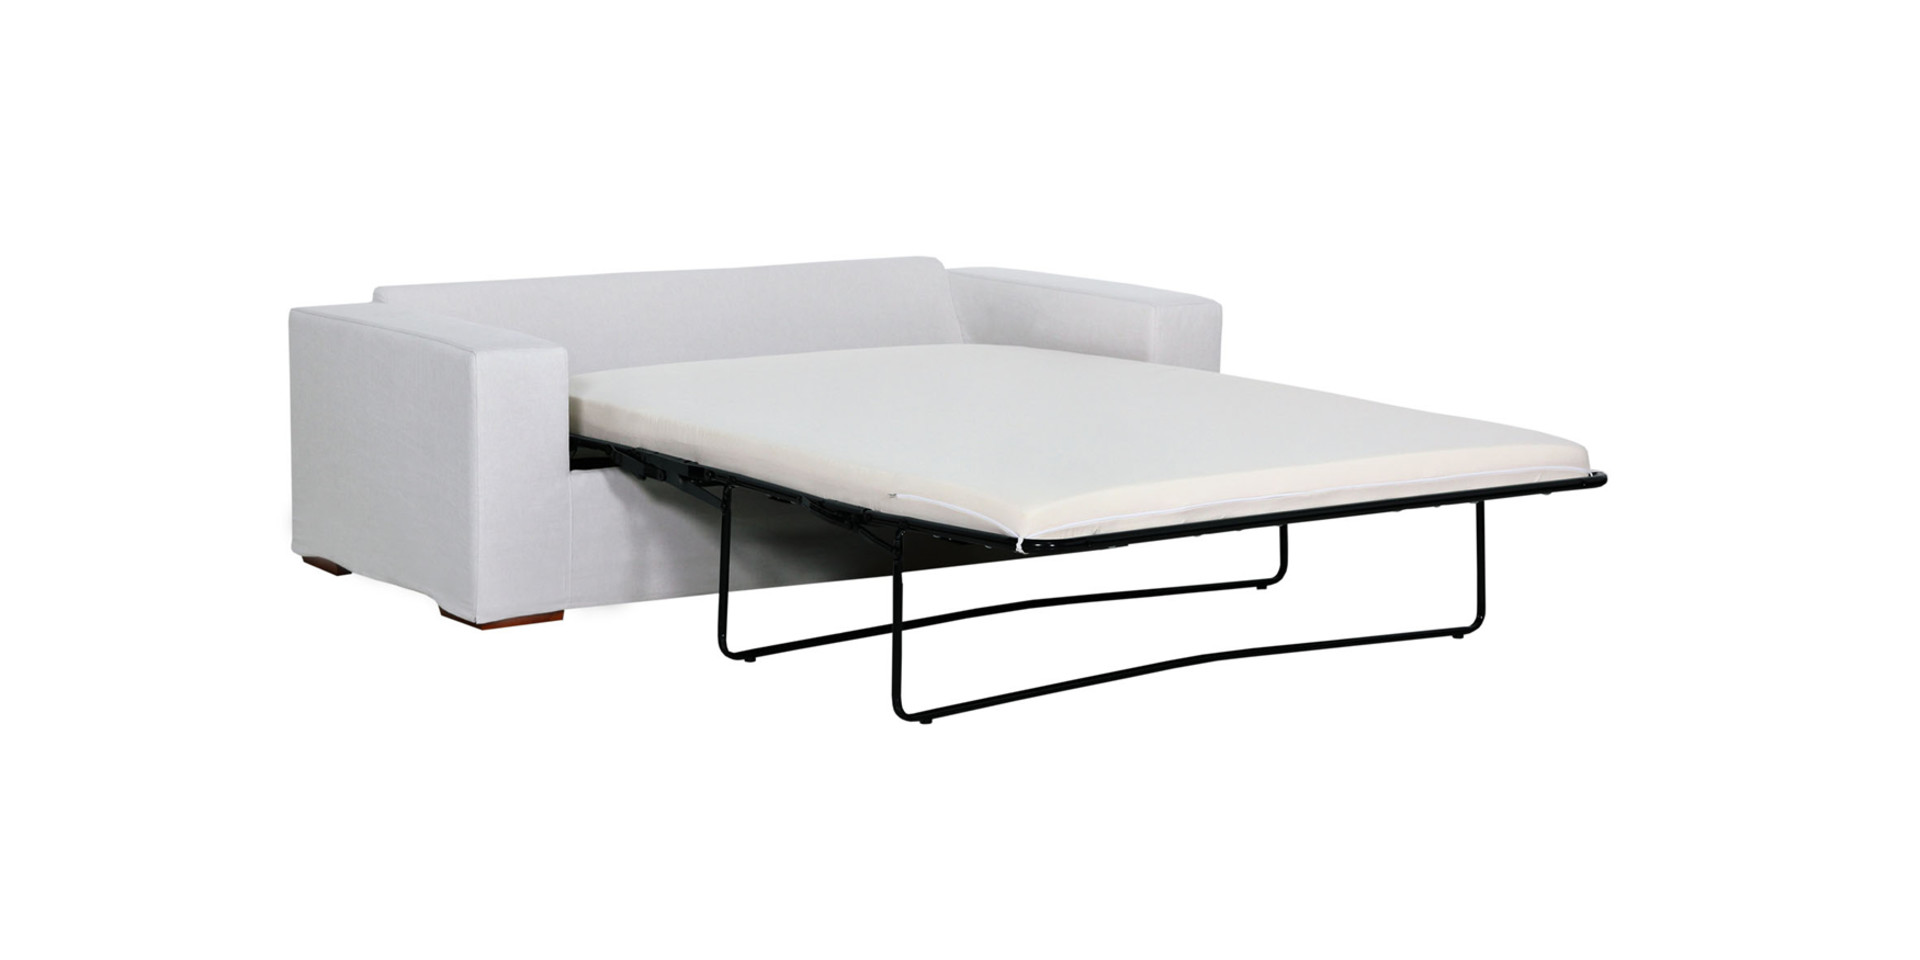 sits-antares-canape-convertible-sofa_bed3_caleido3790_light_beige_6